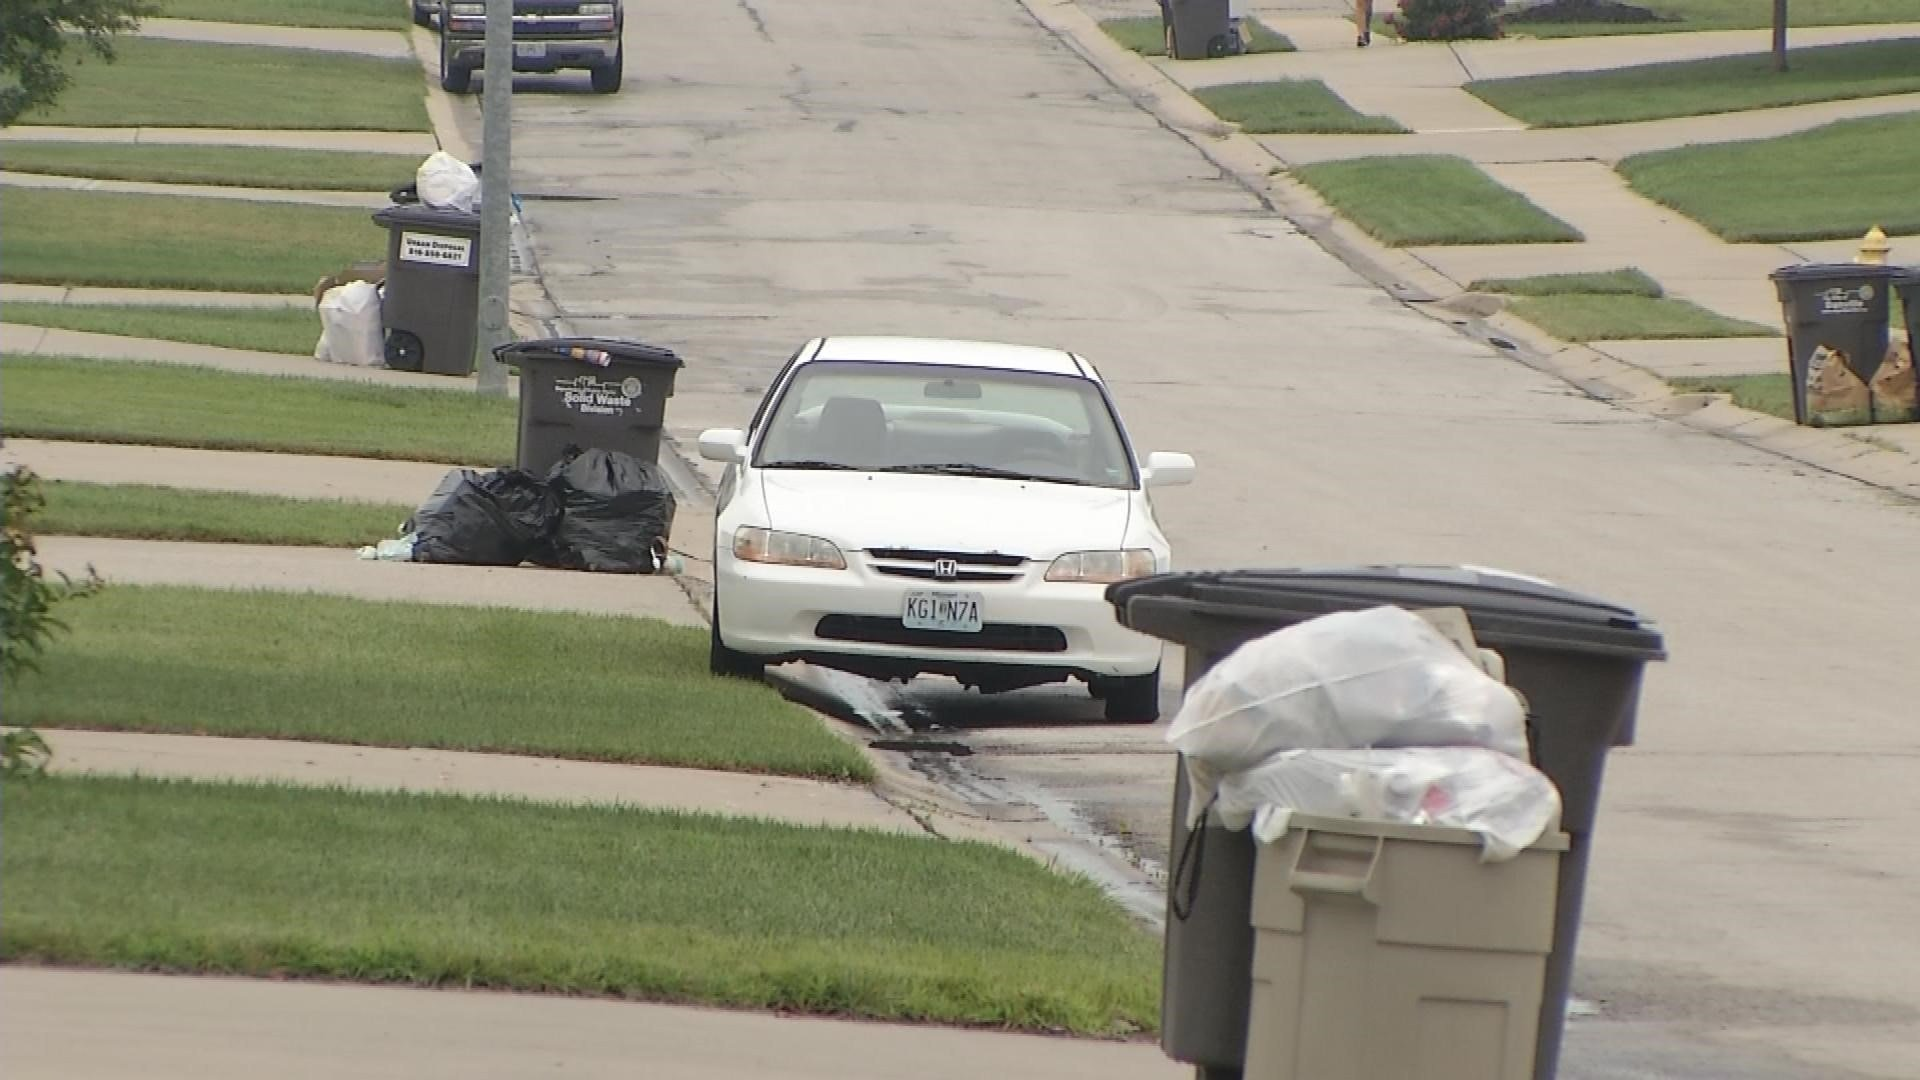 Residents in a Lee's Summit neighborhood can breathe a bit easier now. For more than a week, they say they've been in the dark about their trash not being picked up. (KCTV5)